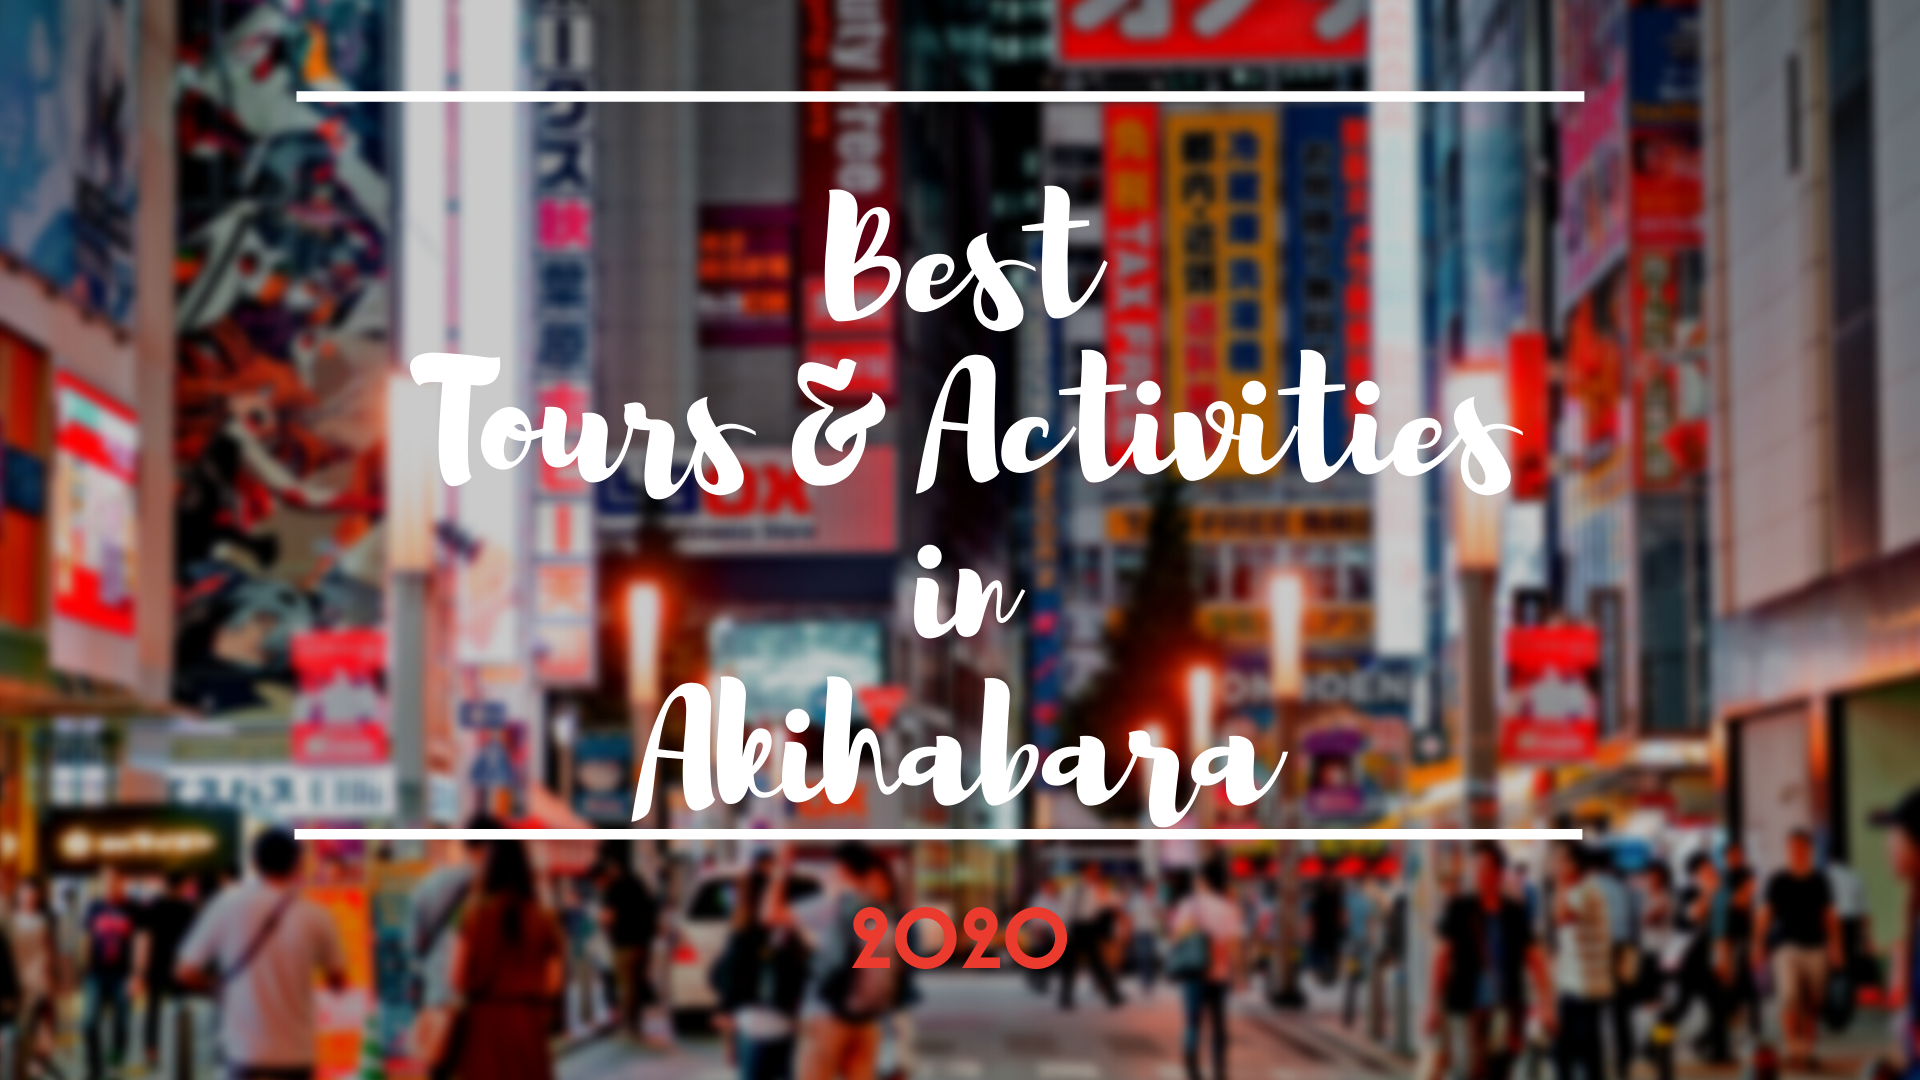 Akihabara : Best Tours and Activities 2020